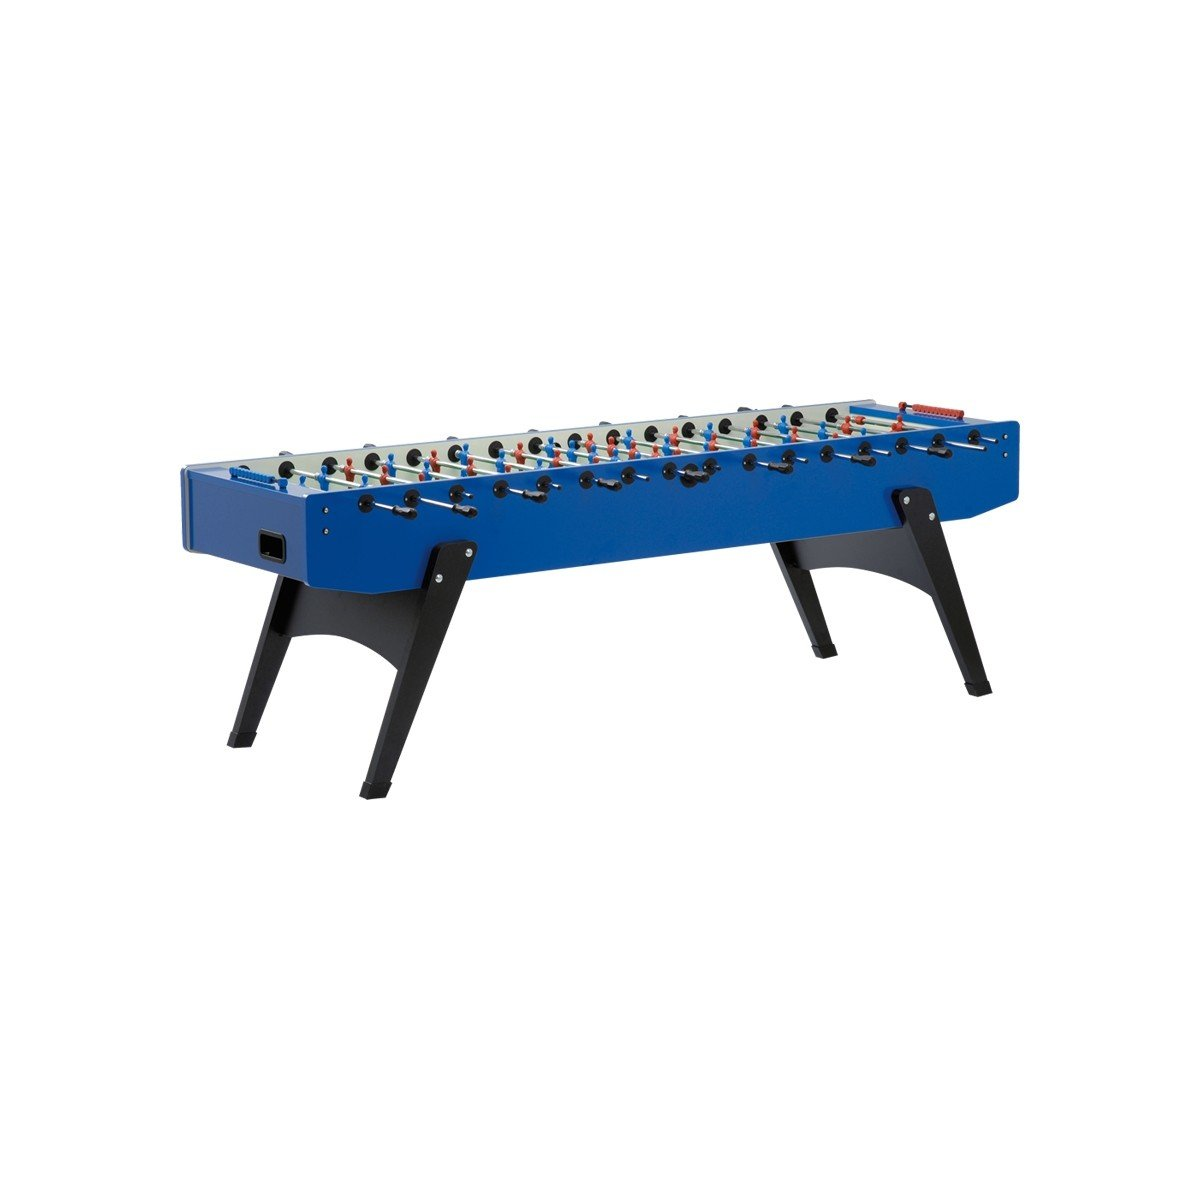 Garlando XXL Outdoor Foosball Table 8 Player - Gaming Blaze